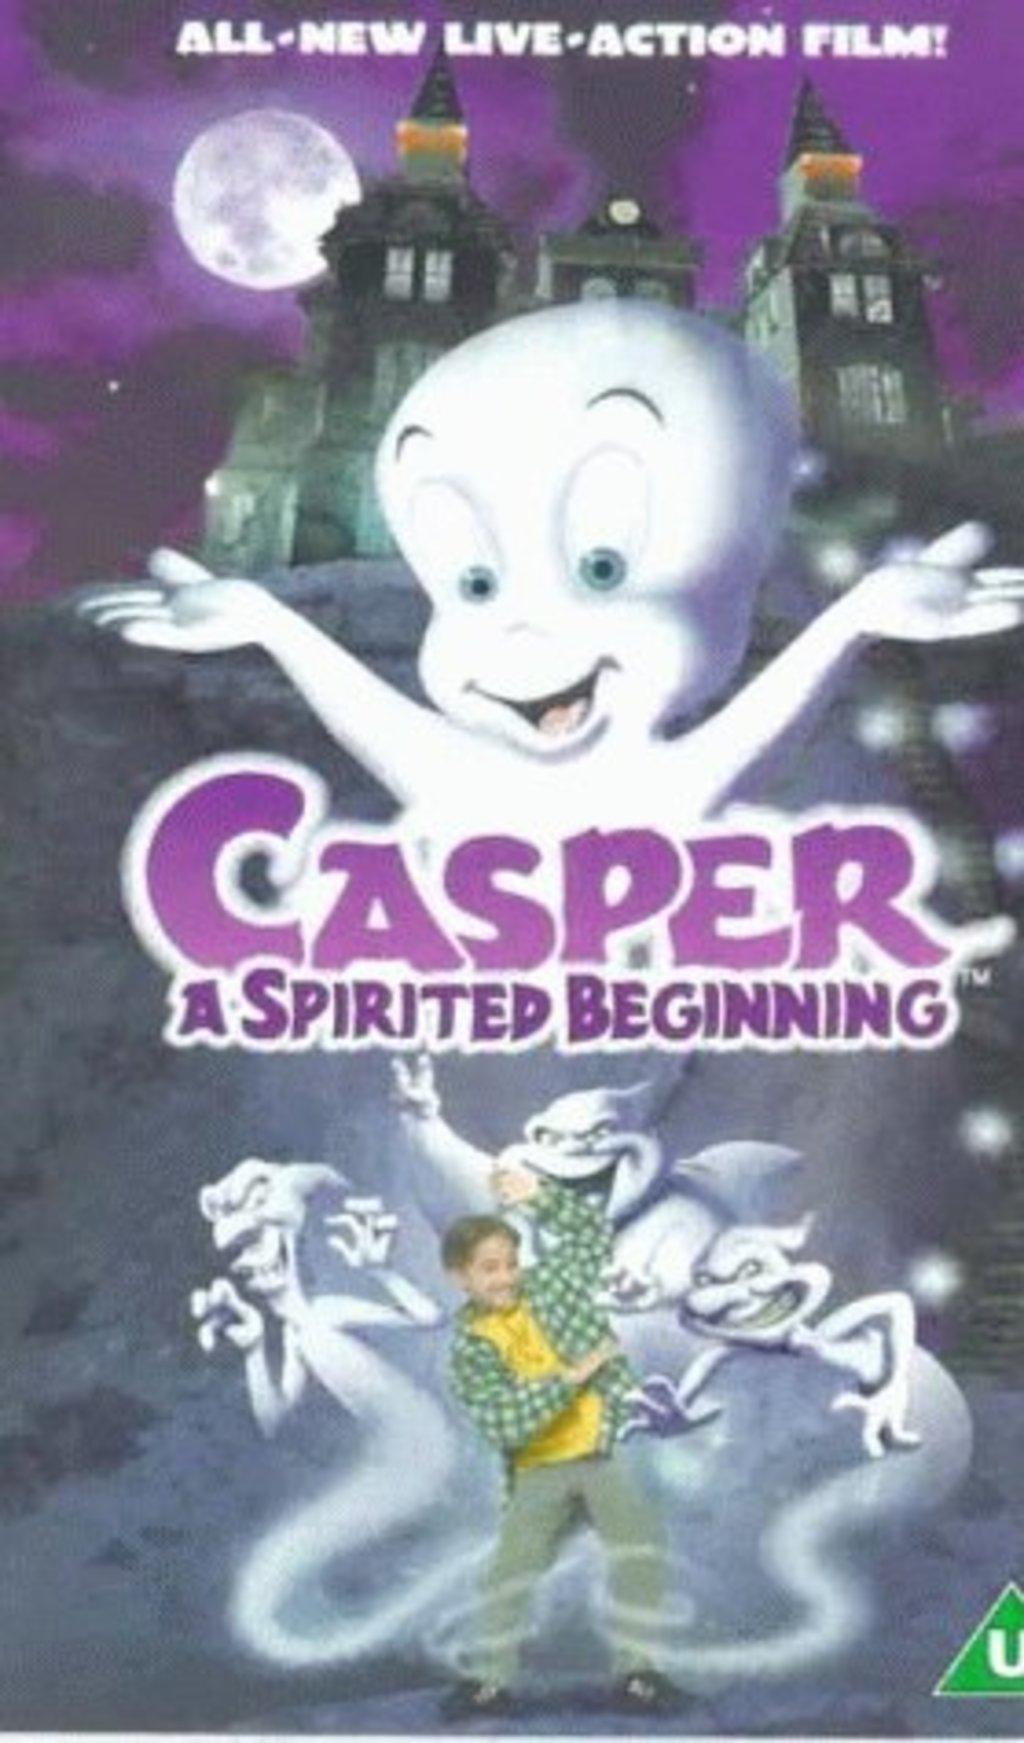 Watch Casper A Spirited Beginning On Netflix Today